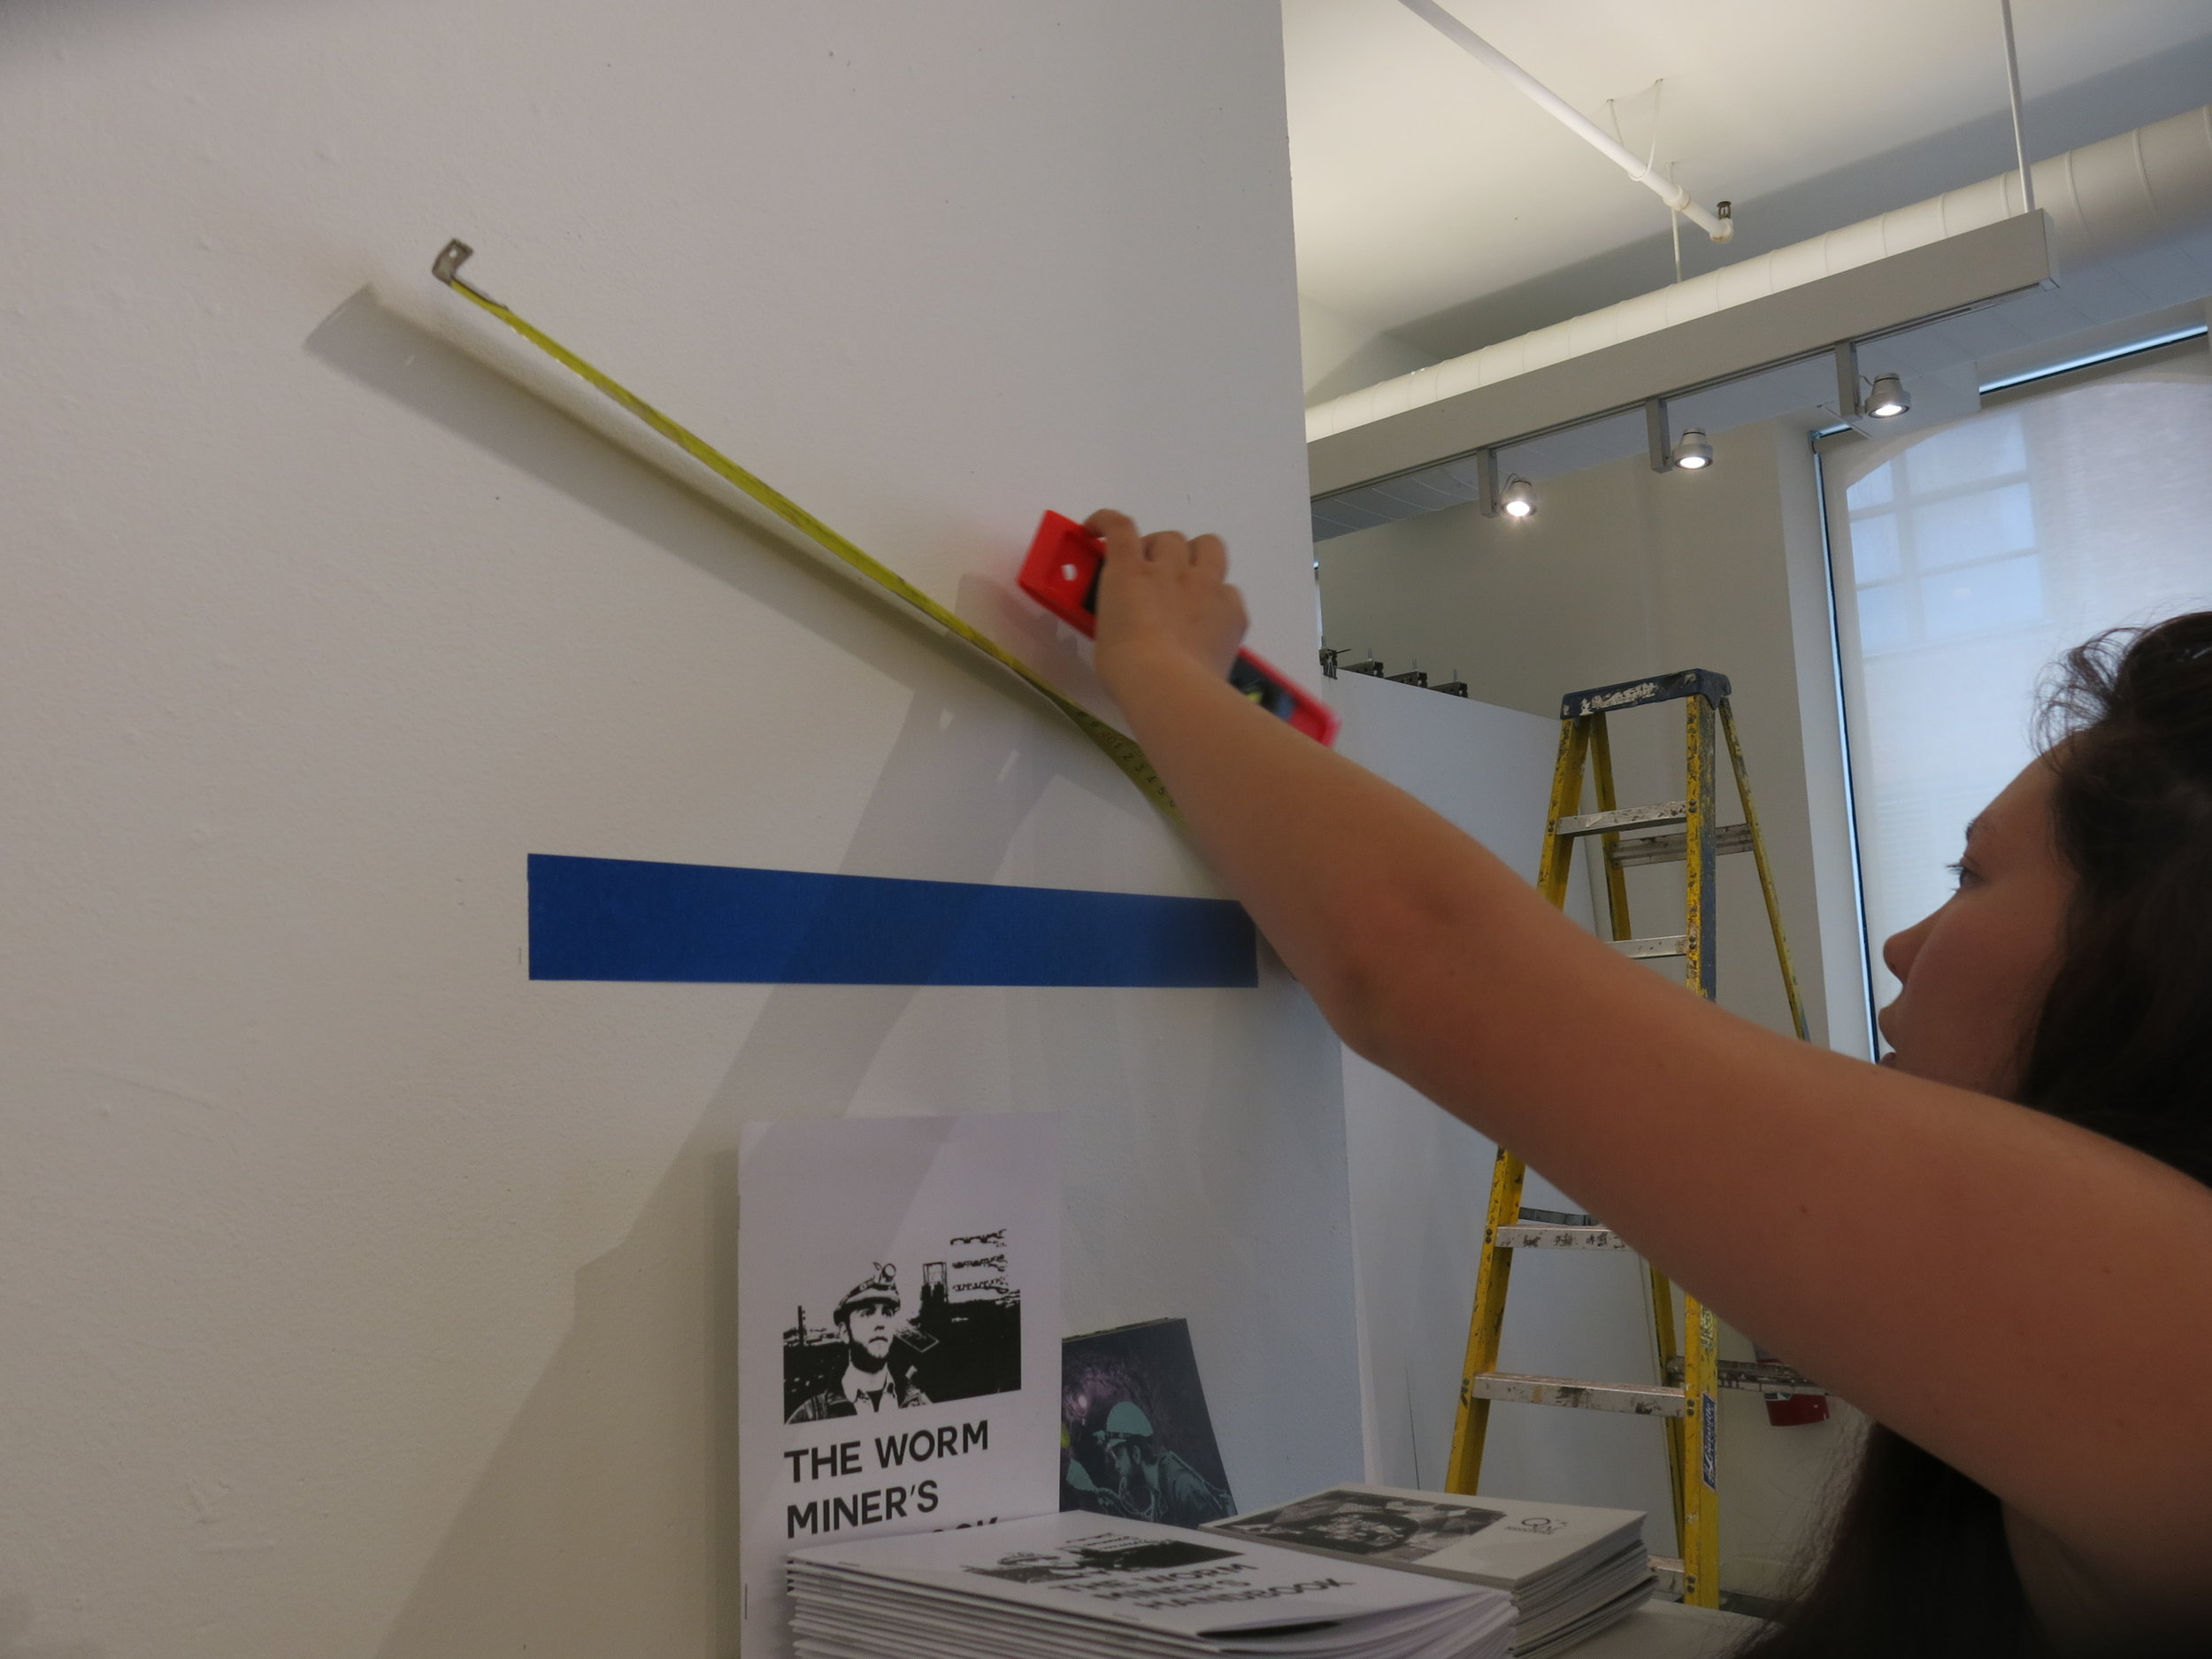 Installing for the Biodesign Challenge exhibition at SVA - School of Visual Arts, NY.